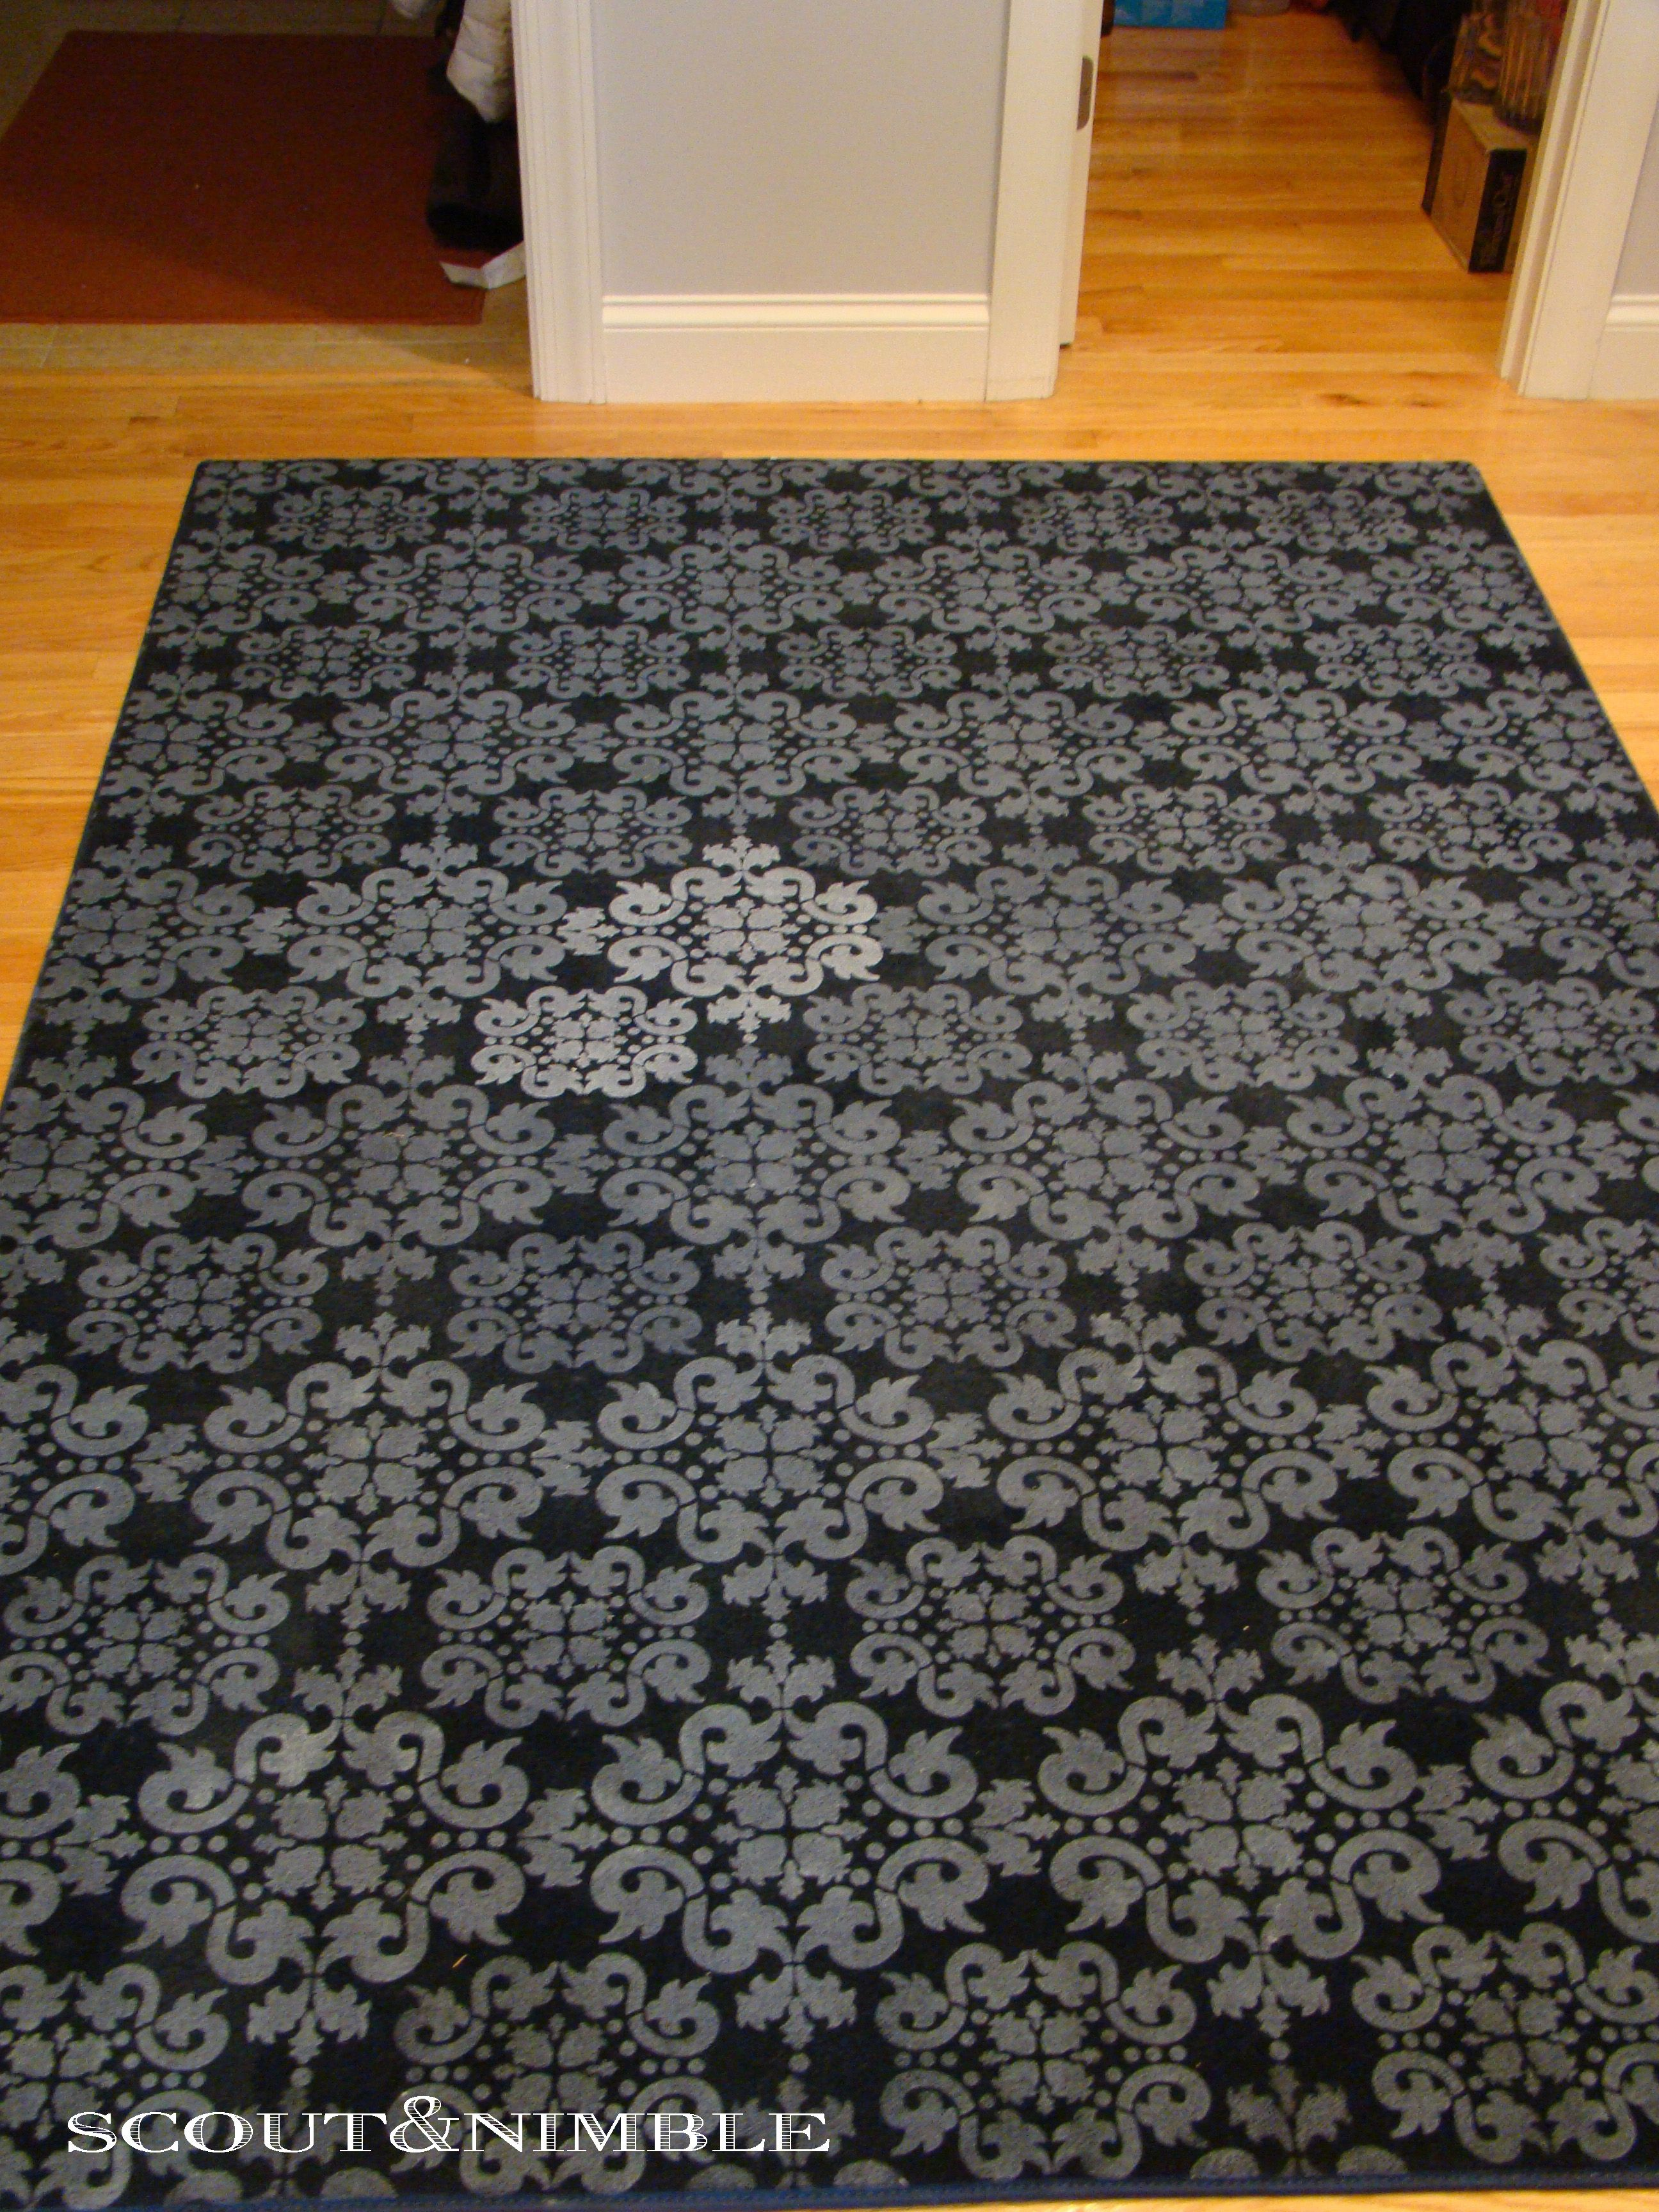 How to make a beautiful inexpensive rug out of a carpet remnant.